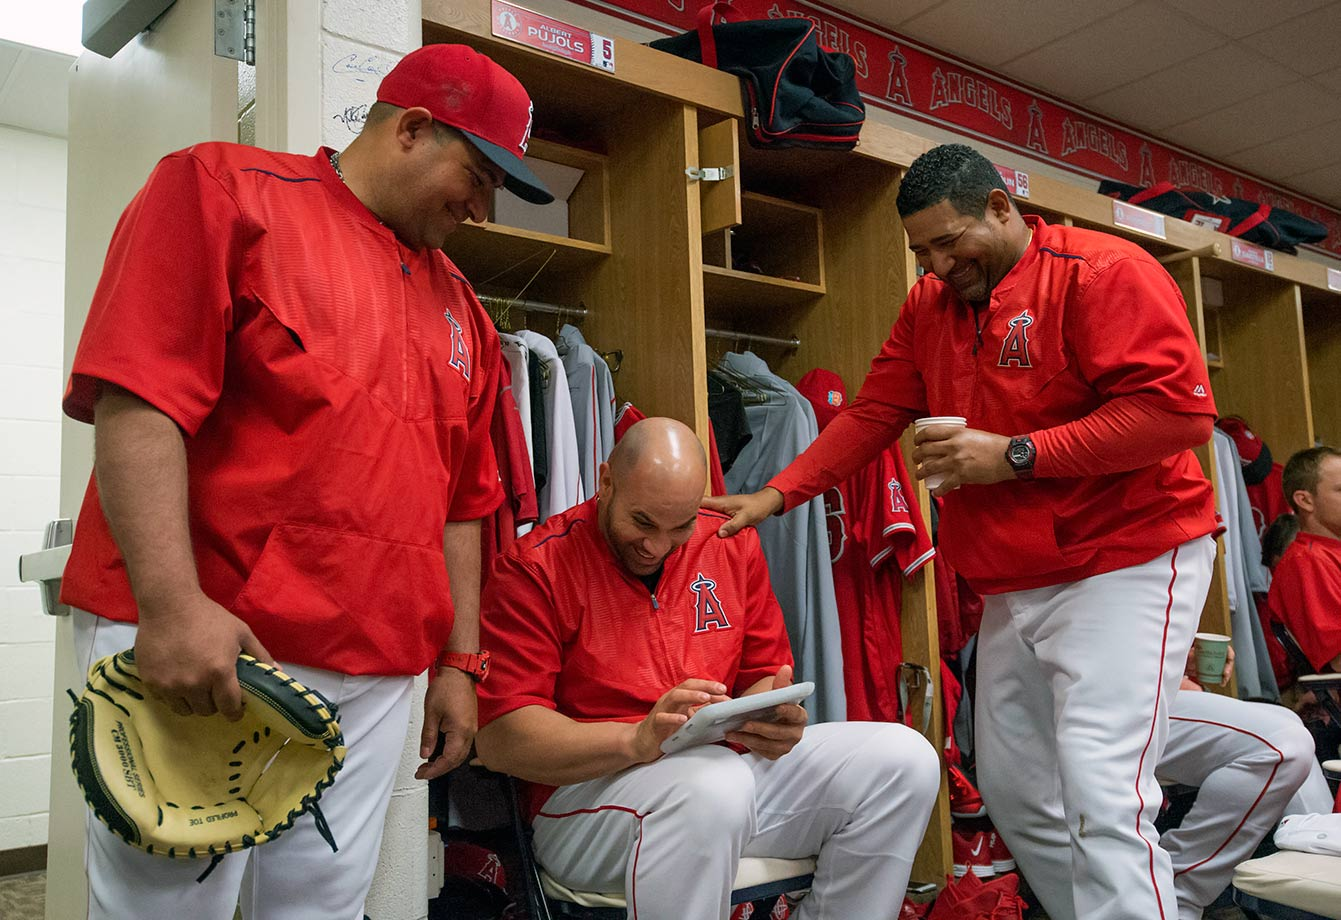 Bengie Molina, Albert Pujols, and Jose Molina of the Los Angeles Angels of Anaheim joke in the locker room before spring training in Tempe, Ariz.